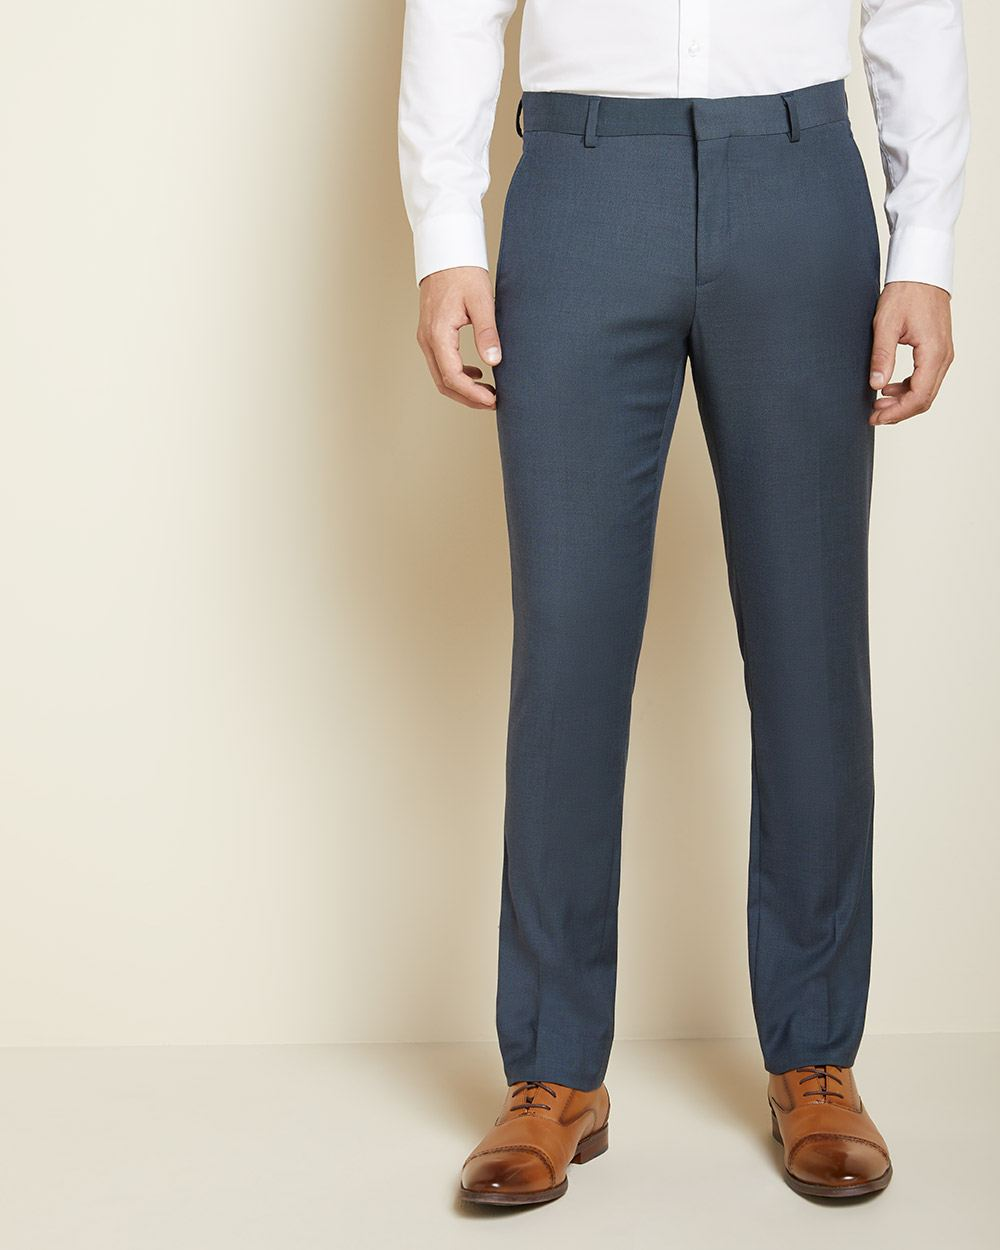 Tailored Fit Teal blue suit pant with COOLMAX(TM) technology